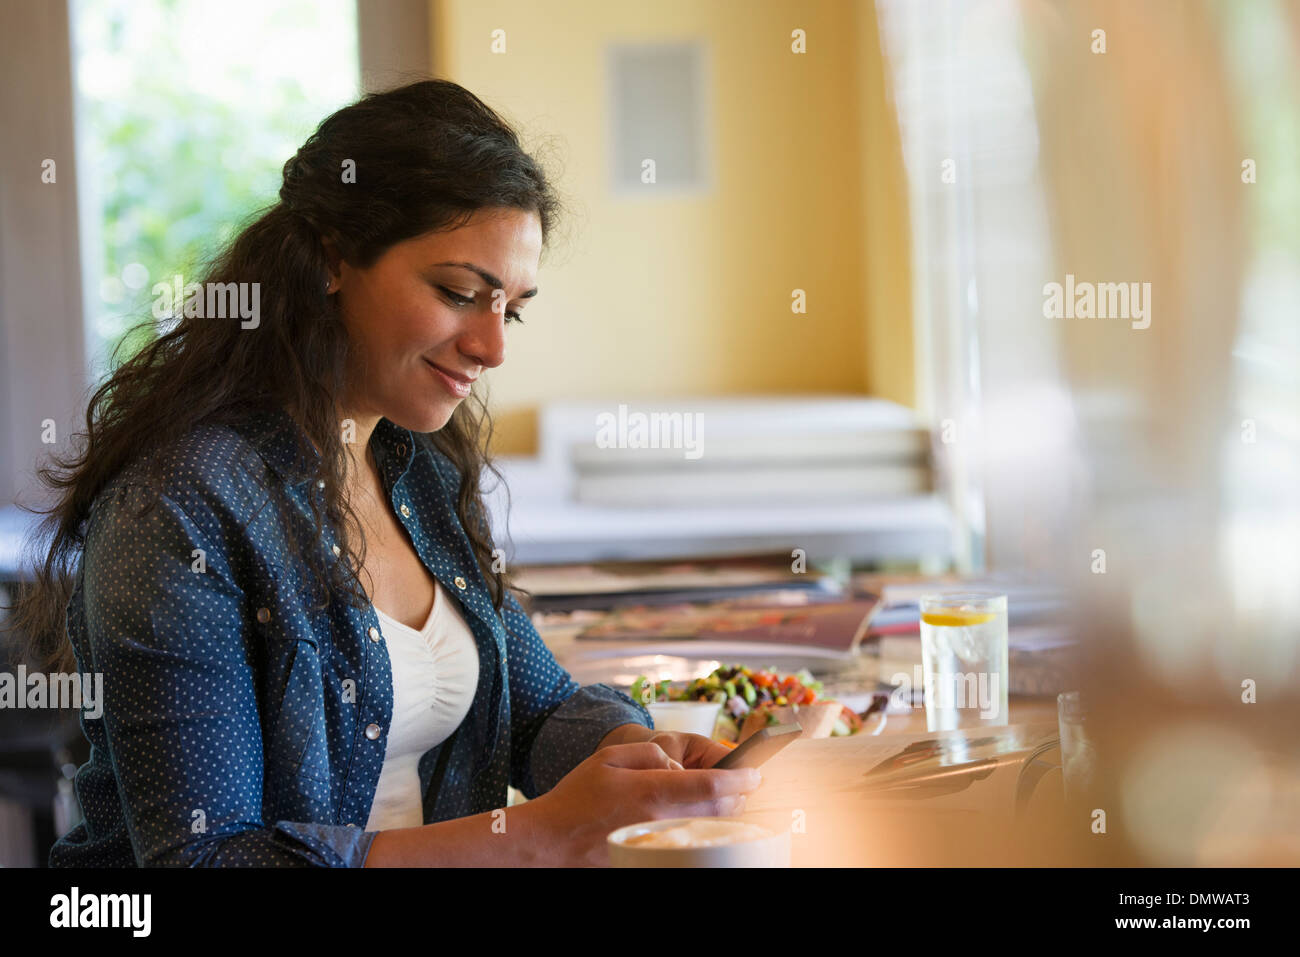 A woman using a smart phone. - Stock Image